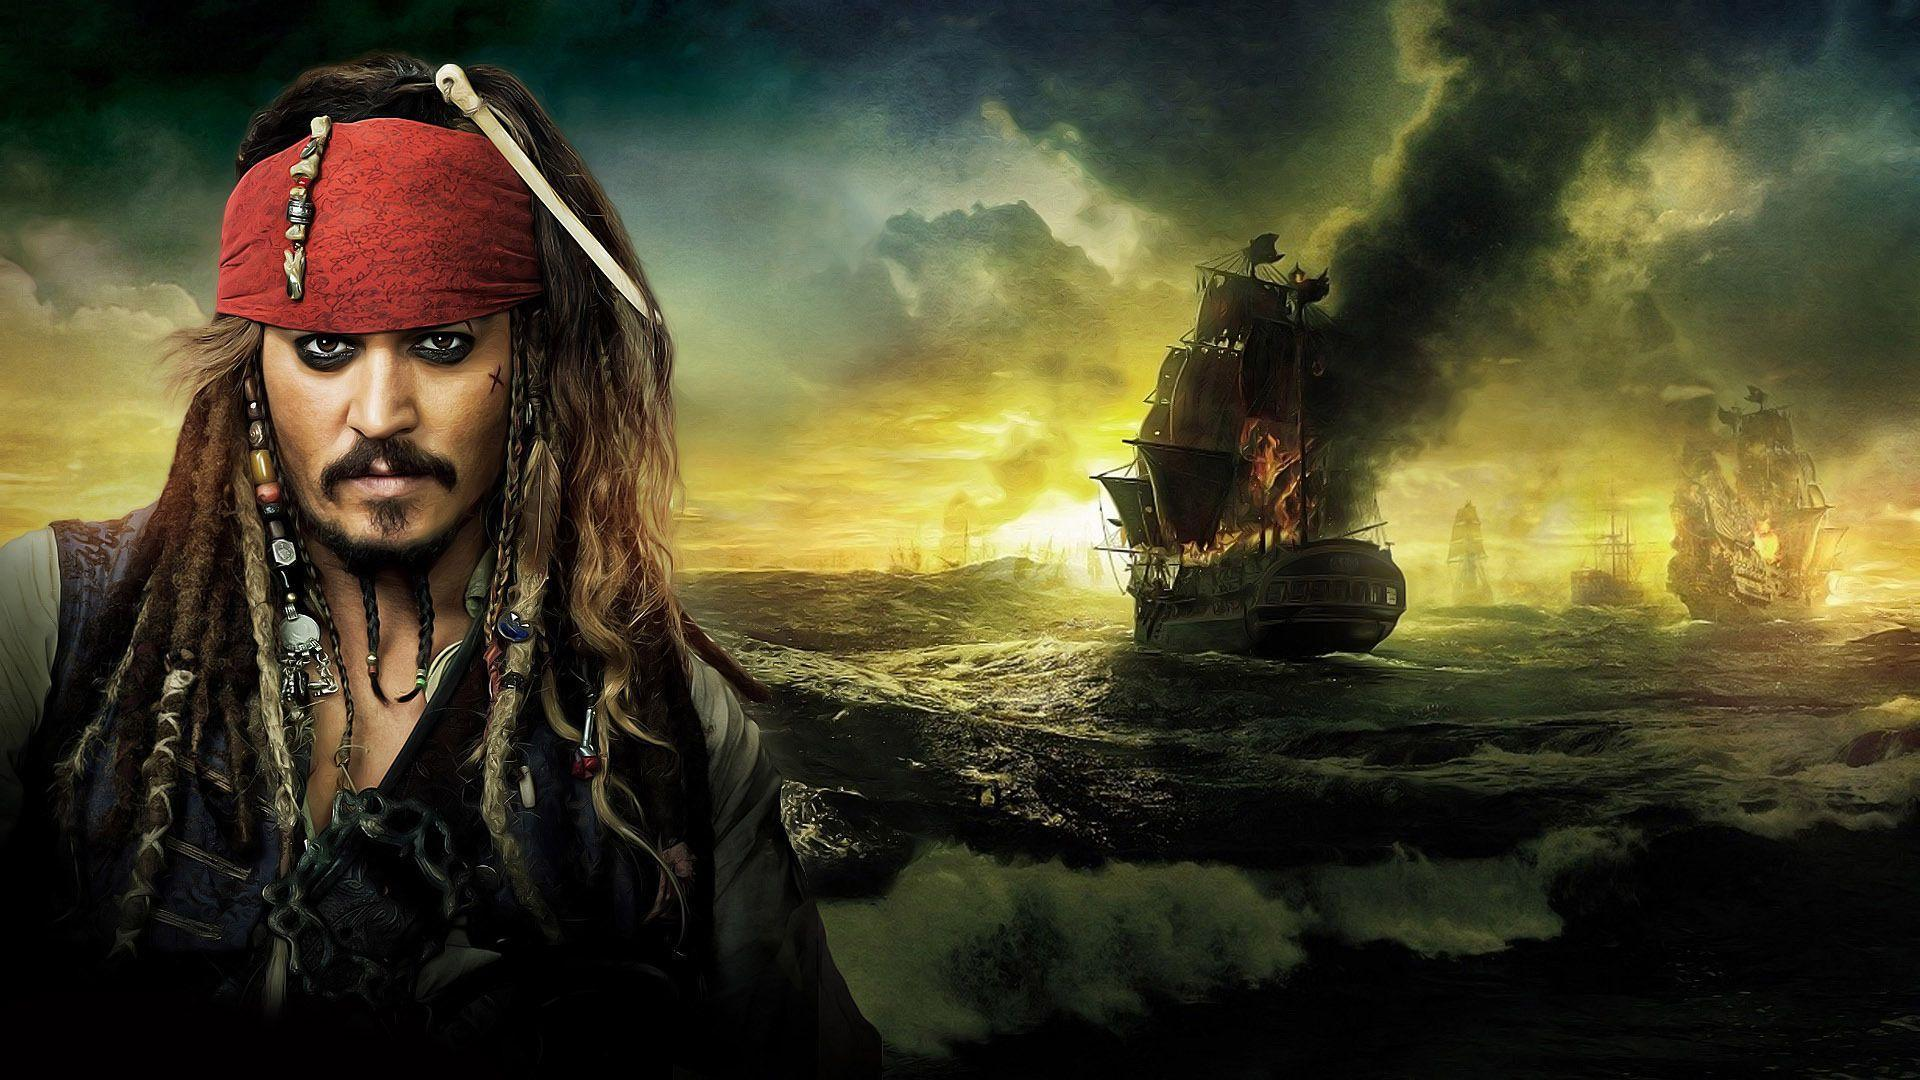 Pirates Of The Caribbean 5 Wallpapers HD Wallpapers